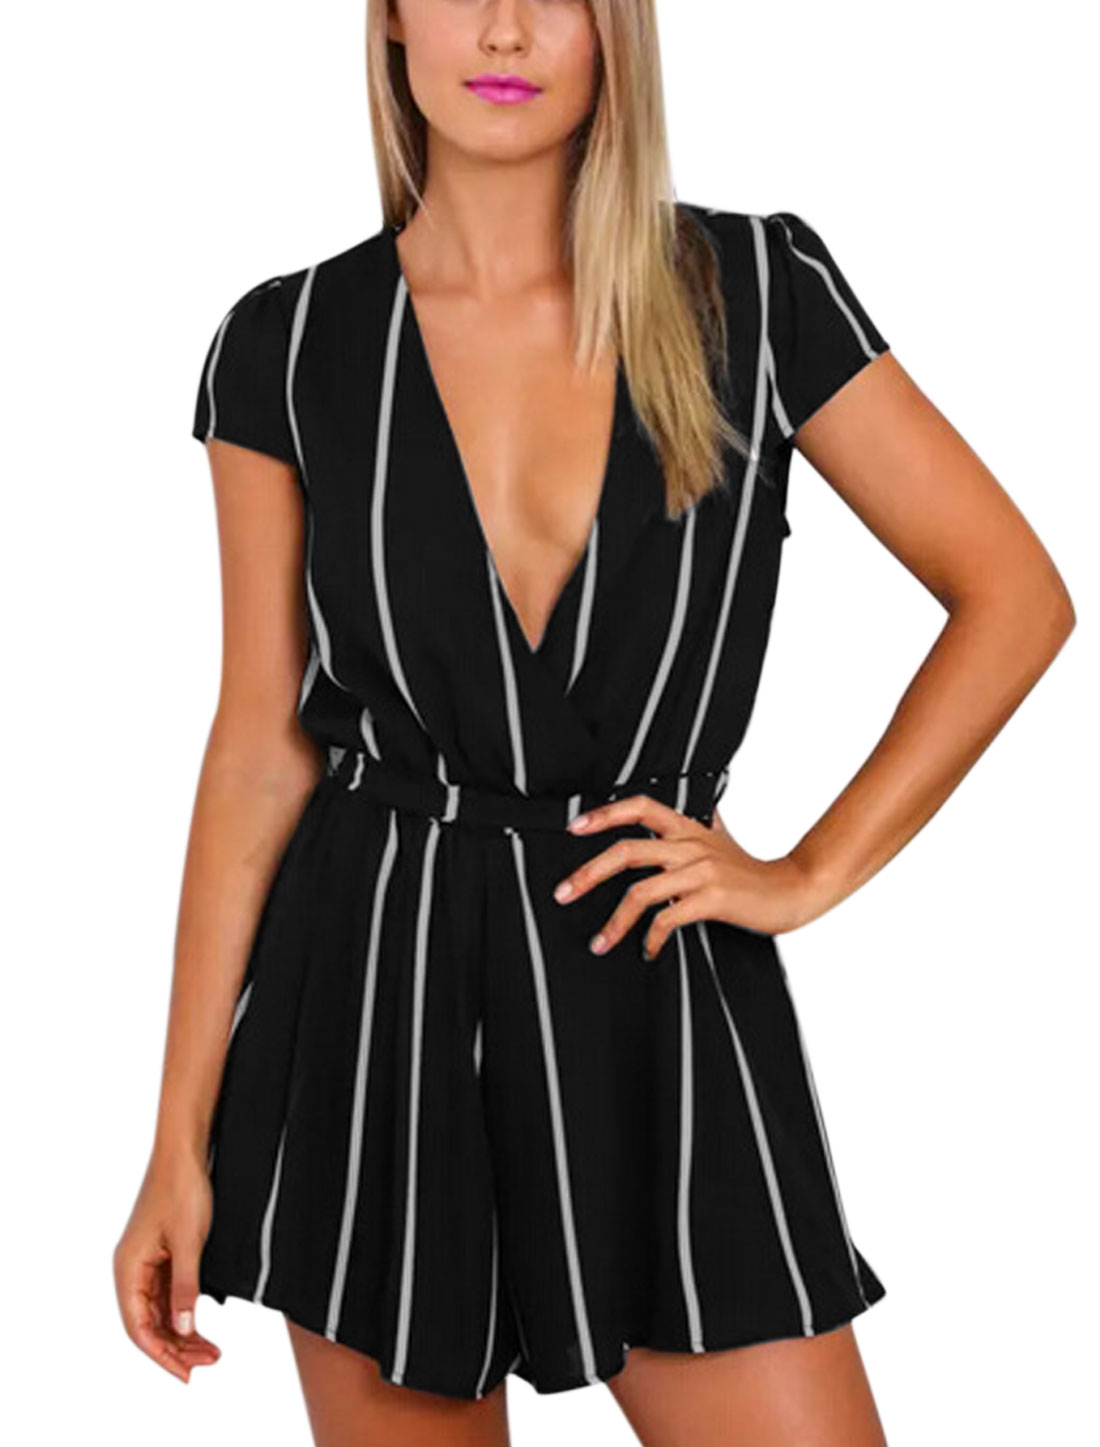 Ladies Cap Sleeve Belted Leisure Stripes Chiffon Playsuit Black M